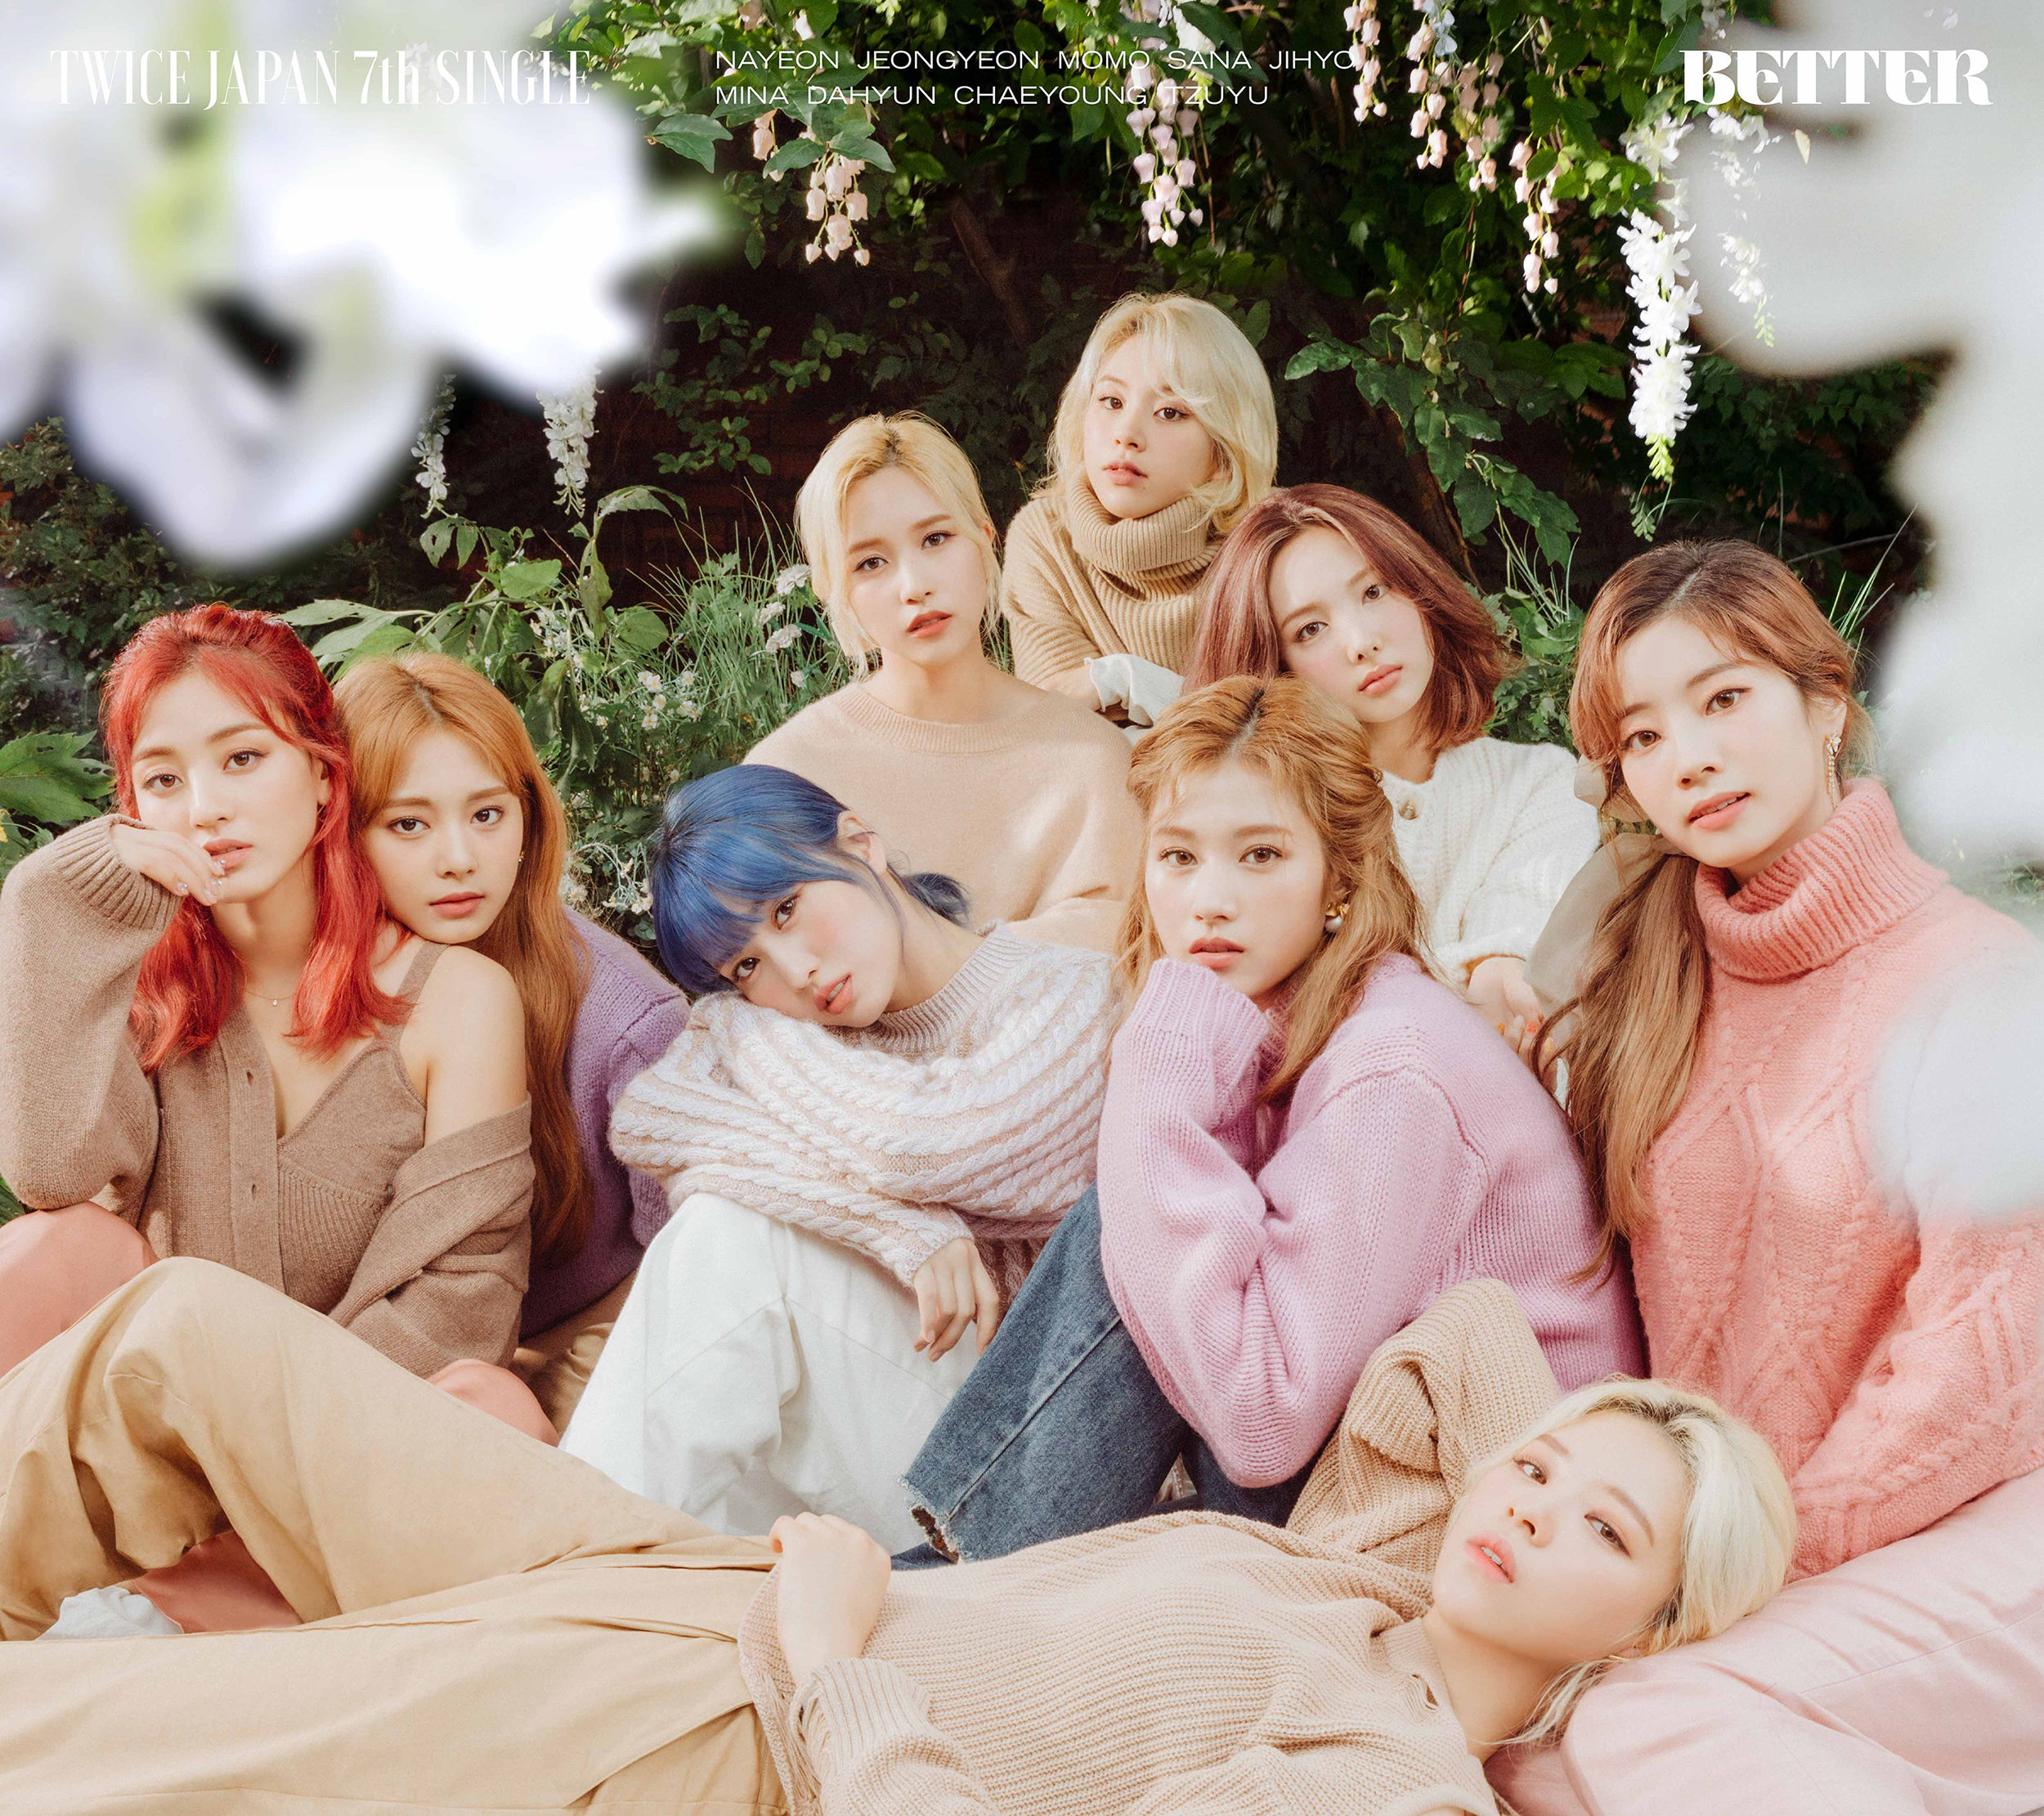 TWICE Better Type B cover art.png